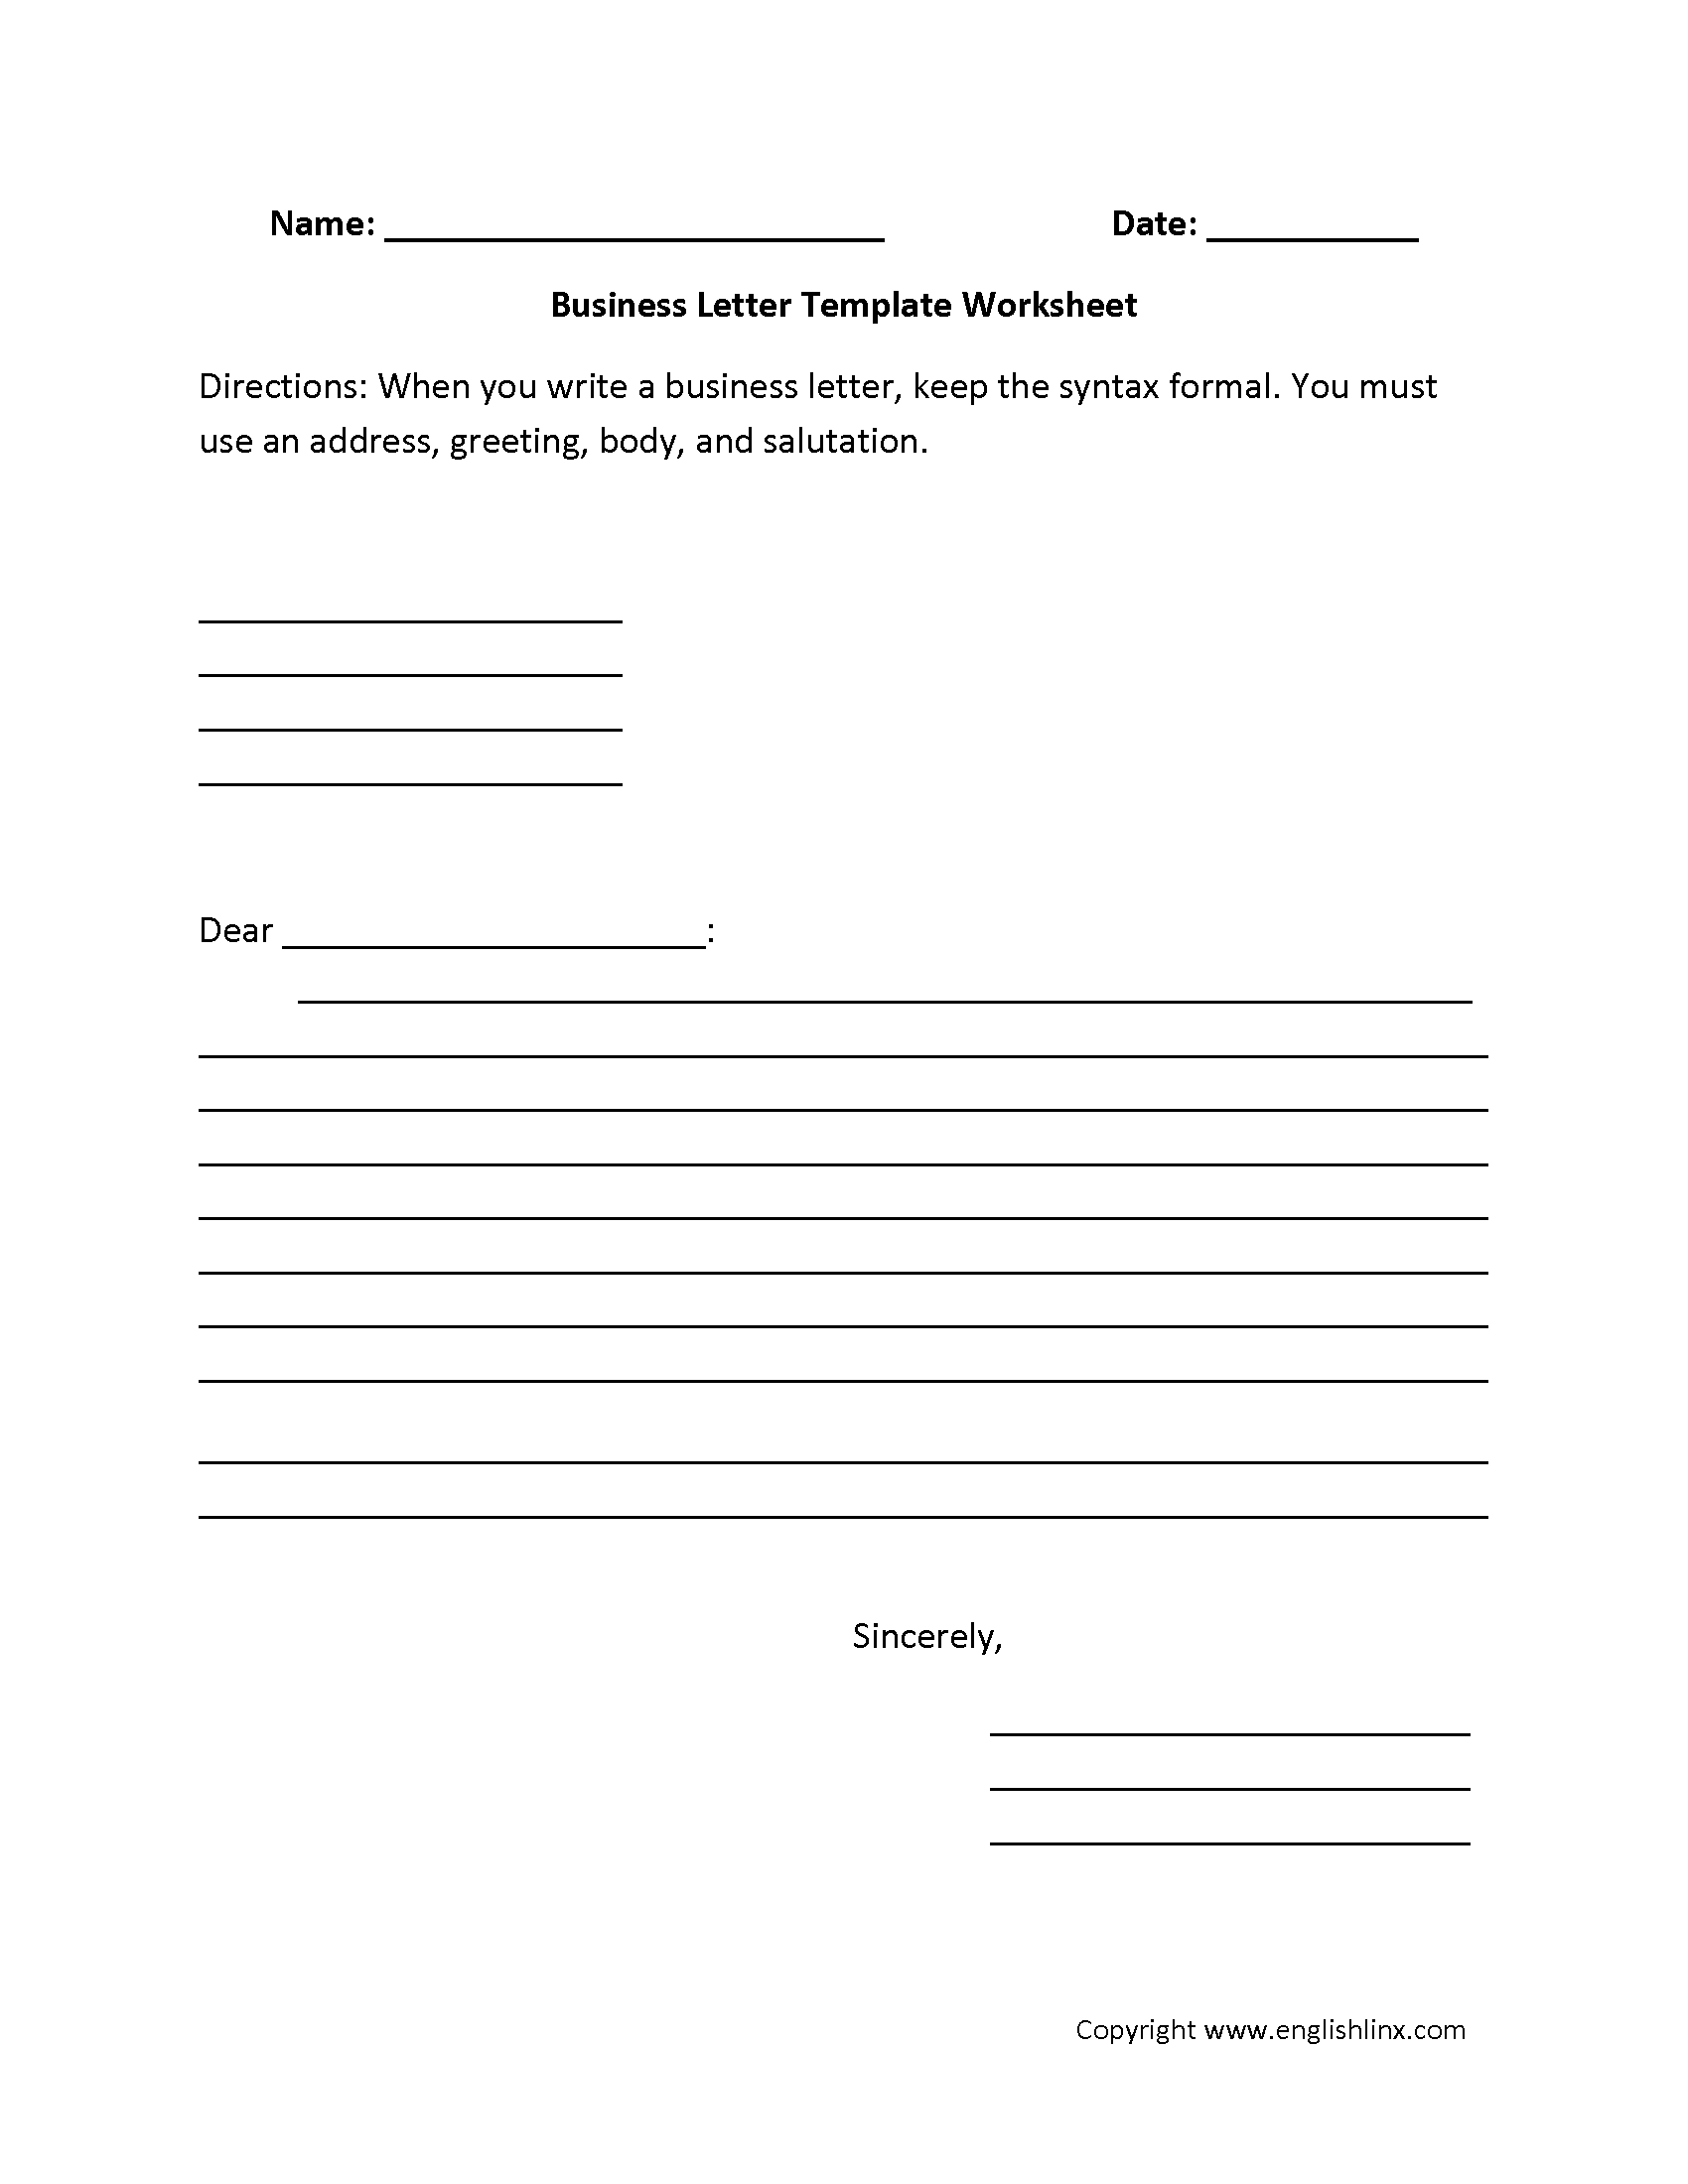 Worksheet practice writing letters worksheets grass fedjp worksheet for writing the letters ab and c super english kid purpose of this is to help students practice how use worksheet expocarfo